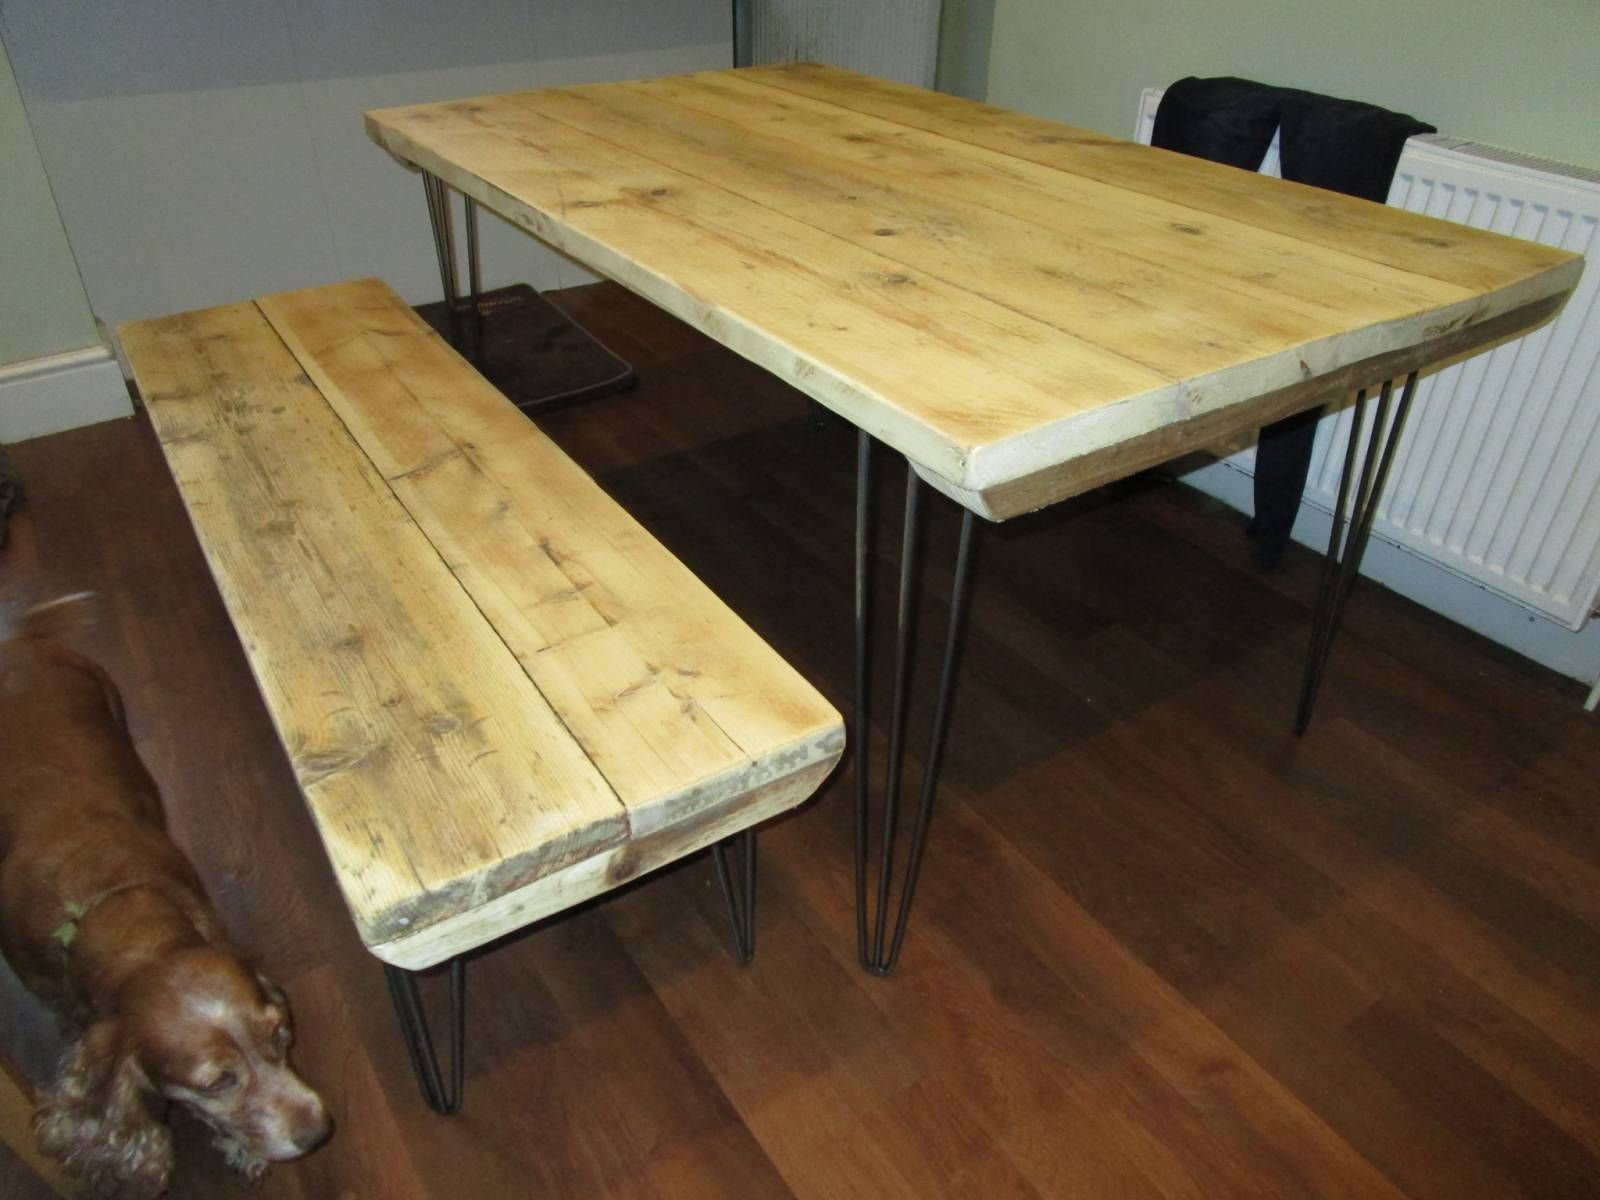 Reclaimed Wood Dining Table, Kitchen Table, Table,Hairpin Leg Table, Industrial